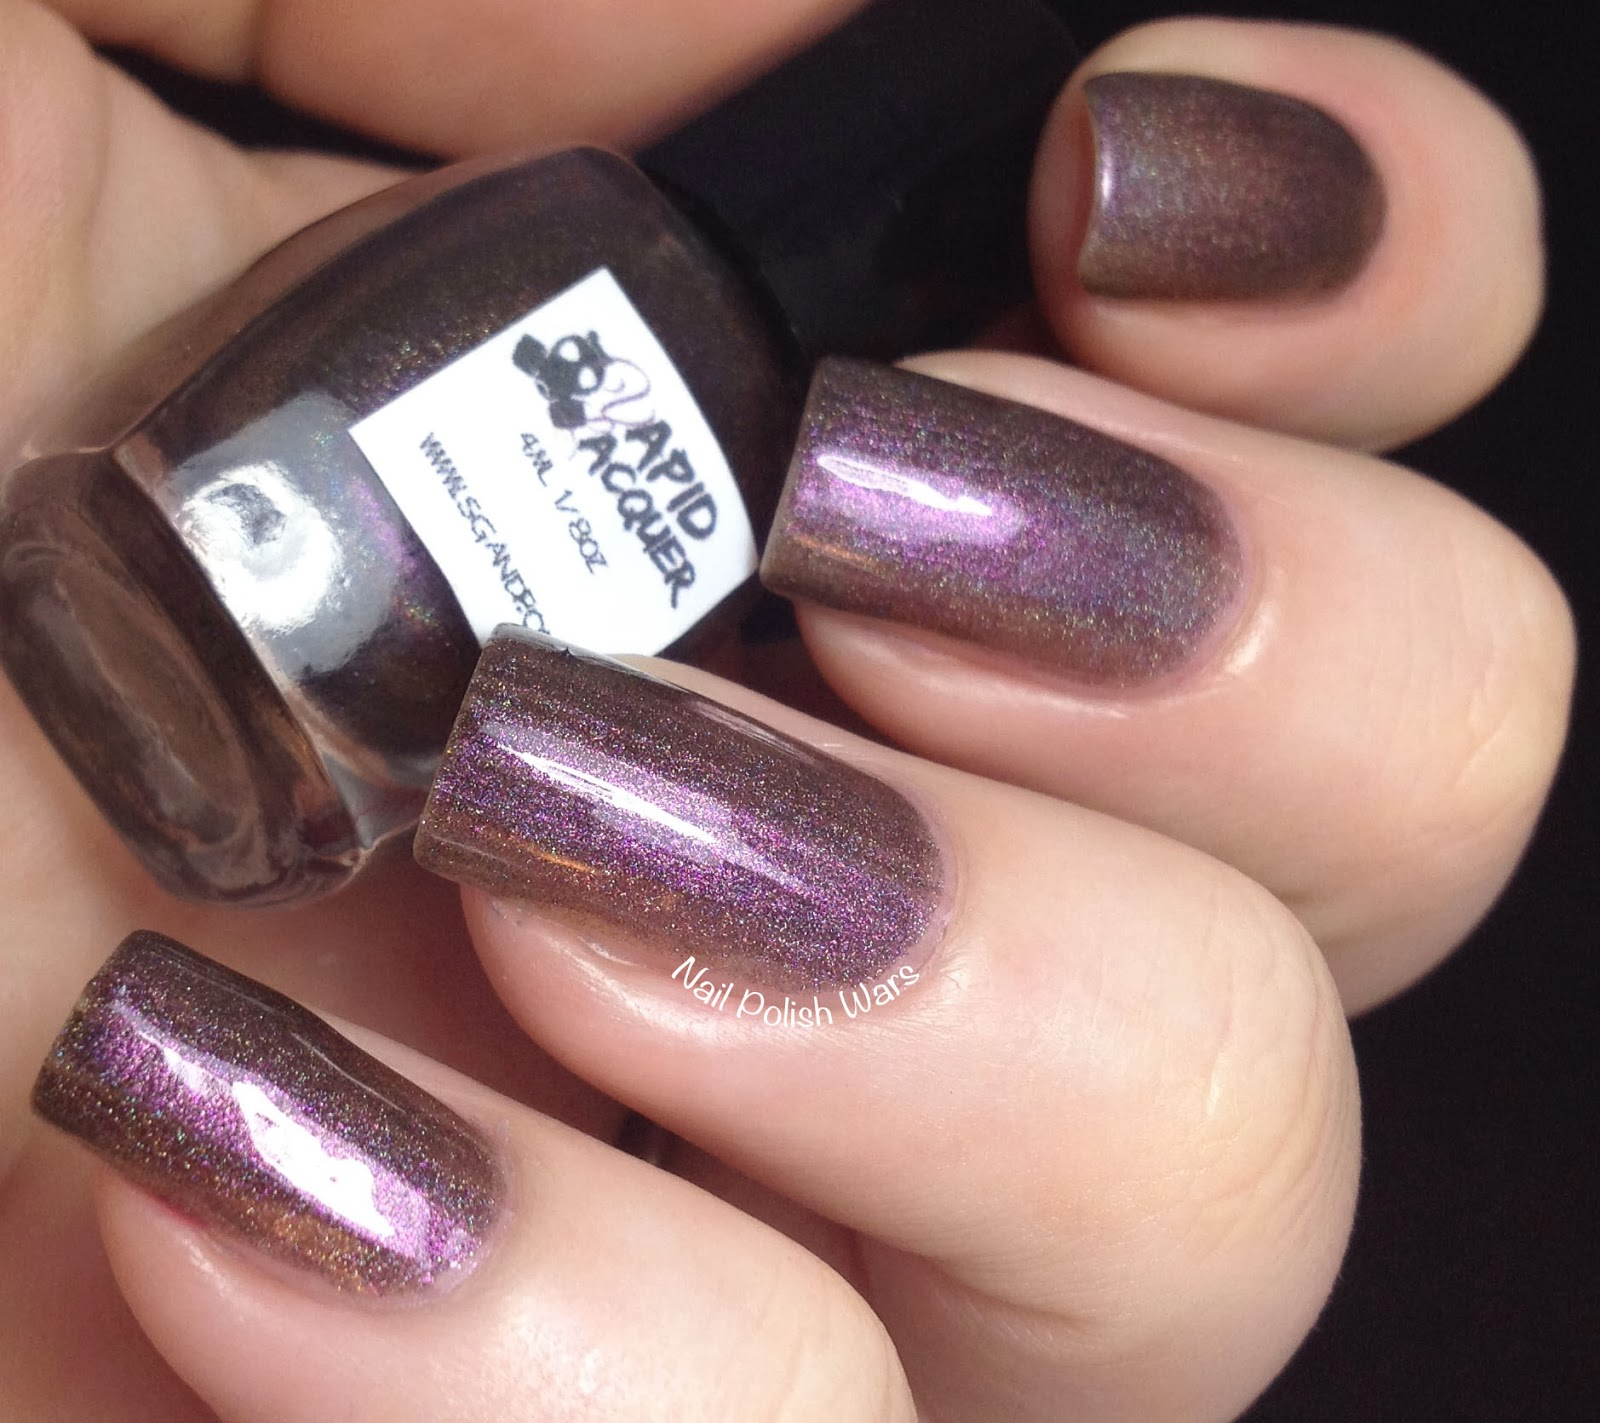 Nail Polish Wars: Vapid Lacquer Swatch & Review